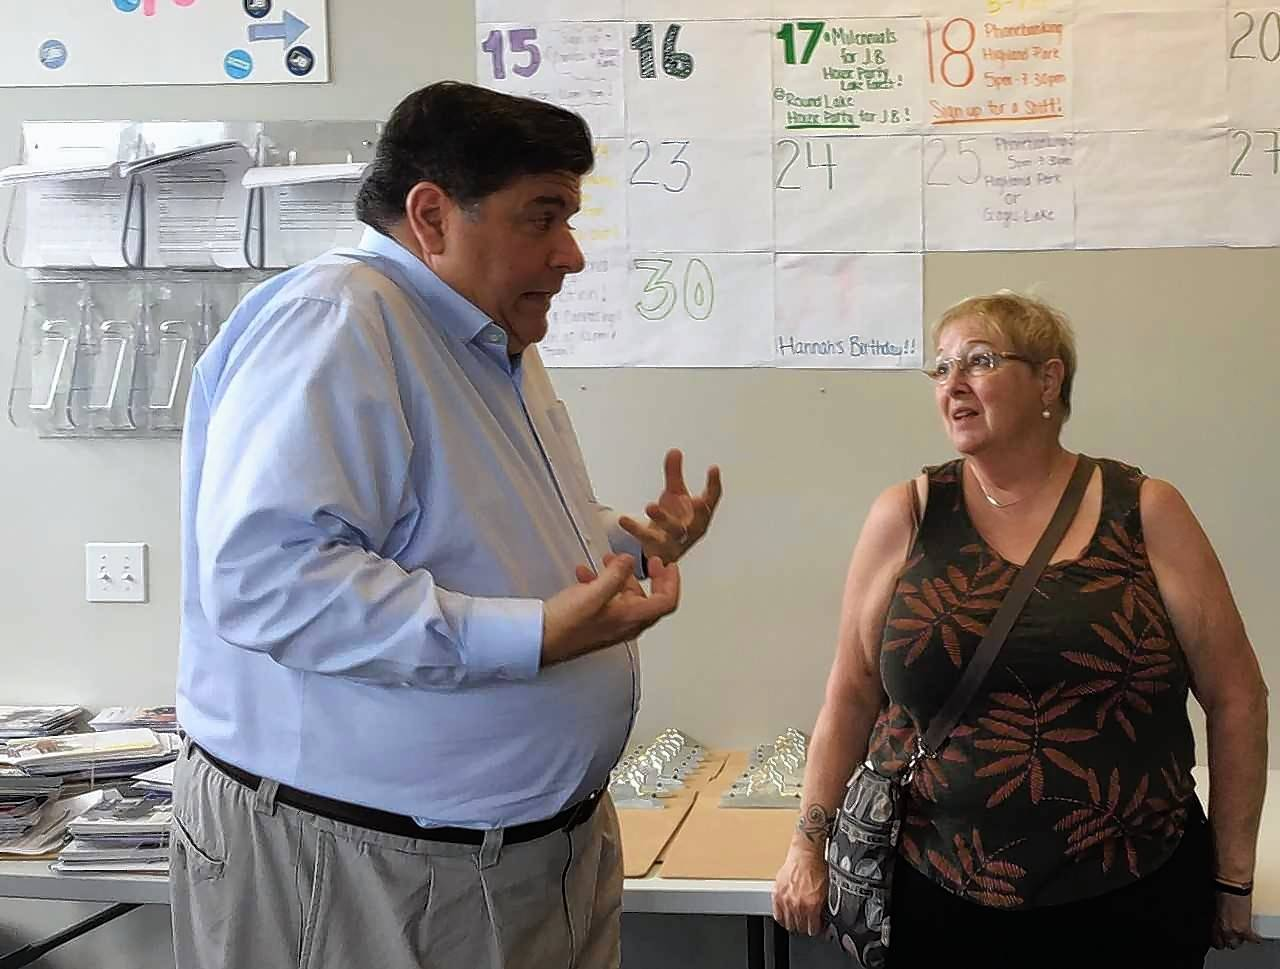 Pritzker wants reforms at tollway, is undecided on Rt. 53 extension